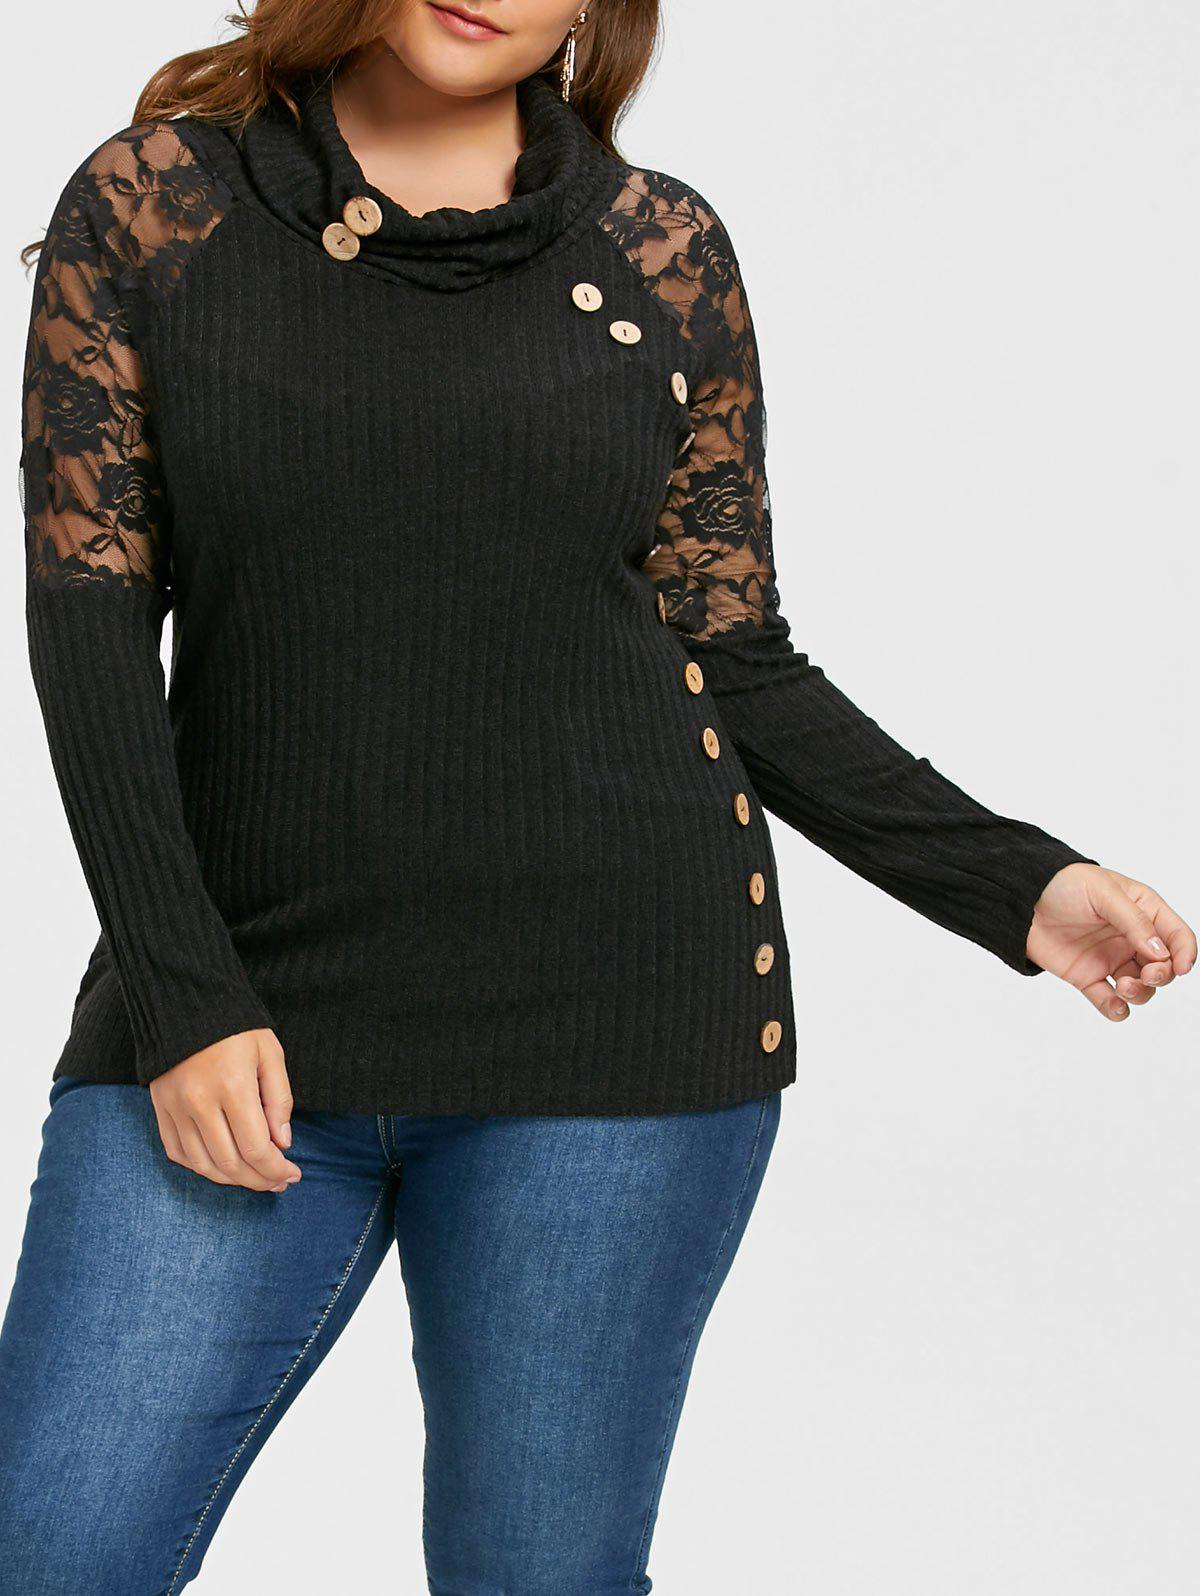 Plus Size Button Decorated Cowl Neck Sheer KnitwearWOMEN<br><br>Size: 4XL; Color: BLACK; Type: Pullovers; Material: Polyester; Sleeve Length: Full; Collar: Cowl Neck; Style: Fashion; Season: Fall,Spring; Pattern Type: Floral; Weight: 0.7100kg; Package Contents: 1 x Knitwear;